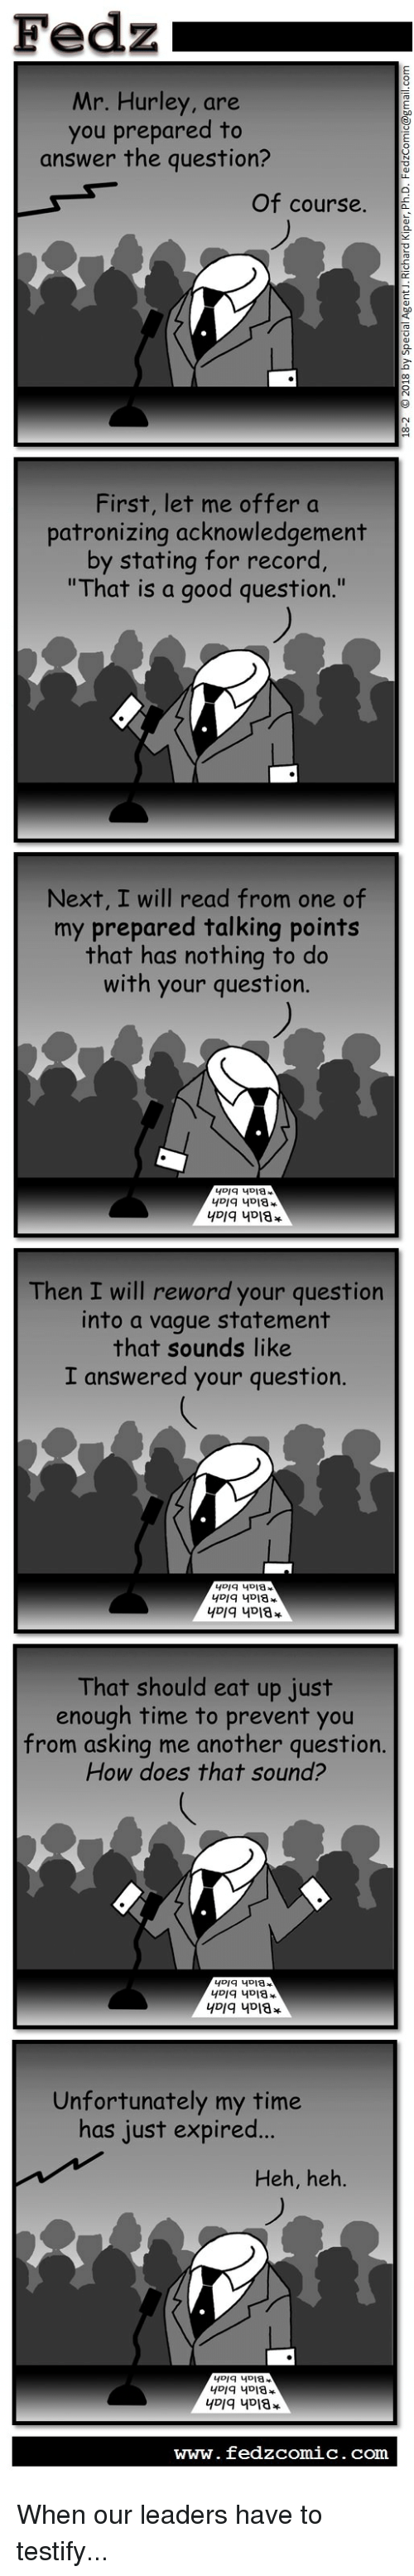 """Good, Record, and Time: Fedz  Mr. Hurley, are  you prepared to  answer the question?  Of course.  First, let me offer a  patronizing acknowledgement  by stating for record  """"That is a good question.  Next, I will read from one of  my prepared talking points  that has nothing to do  with your question.  Then I will reword your question  into a vague statement  that sounds like  I answered your question.  That should eat up just  enough time to prevent you  from asking me another question  How does that sound?  Unfortunately my time  has just expired...  Heh, heh  www. fedzcomic. com When our leaders have to testify..."""